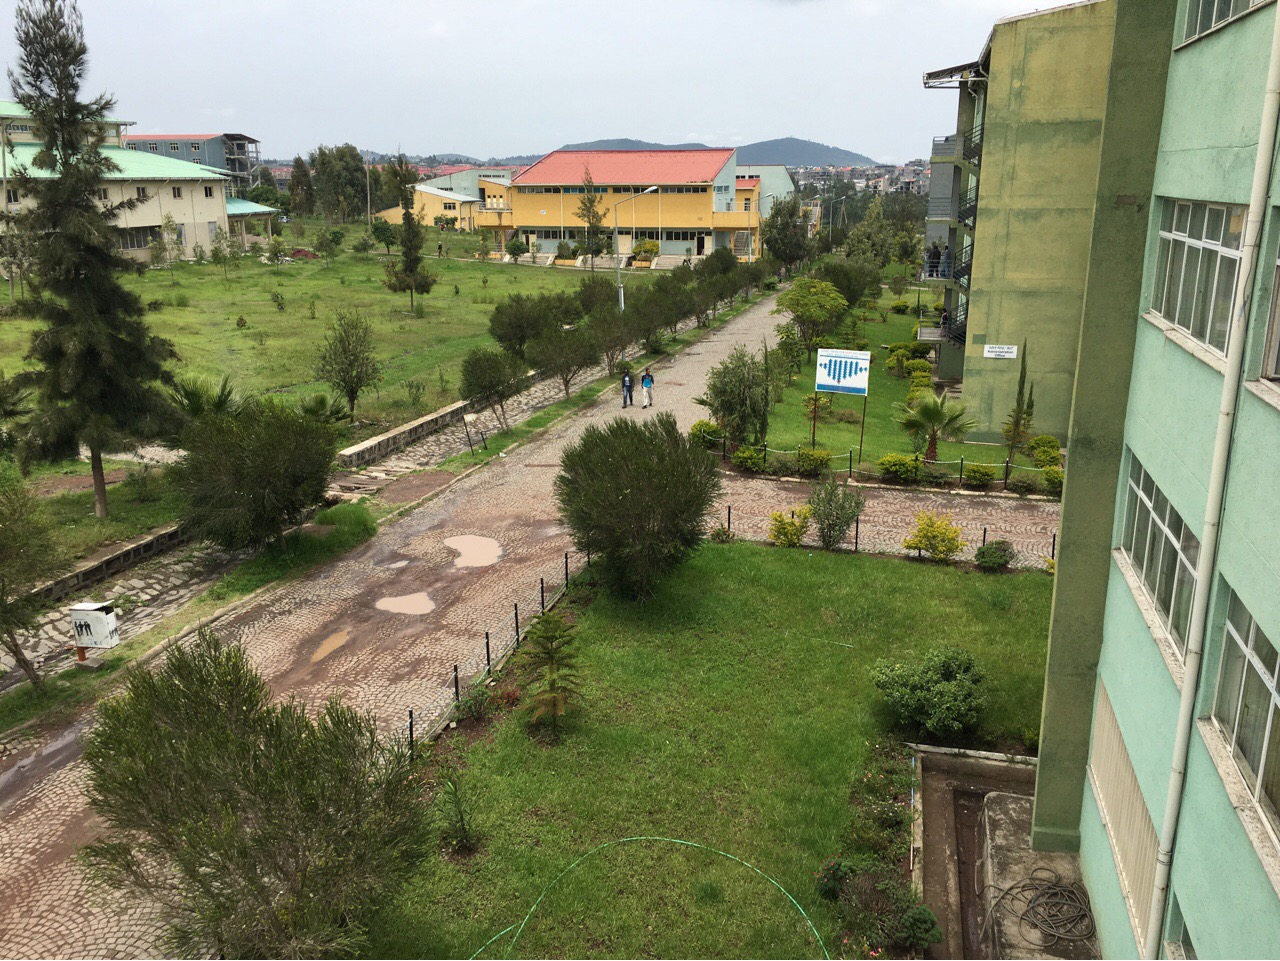 view of the campus